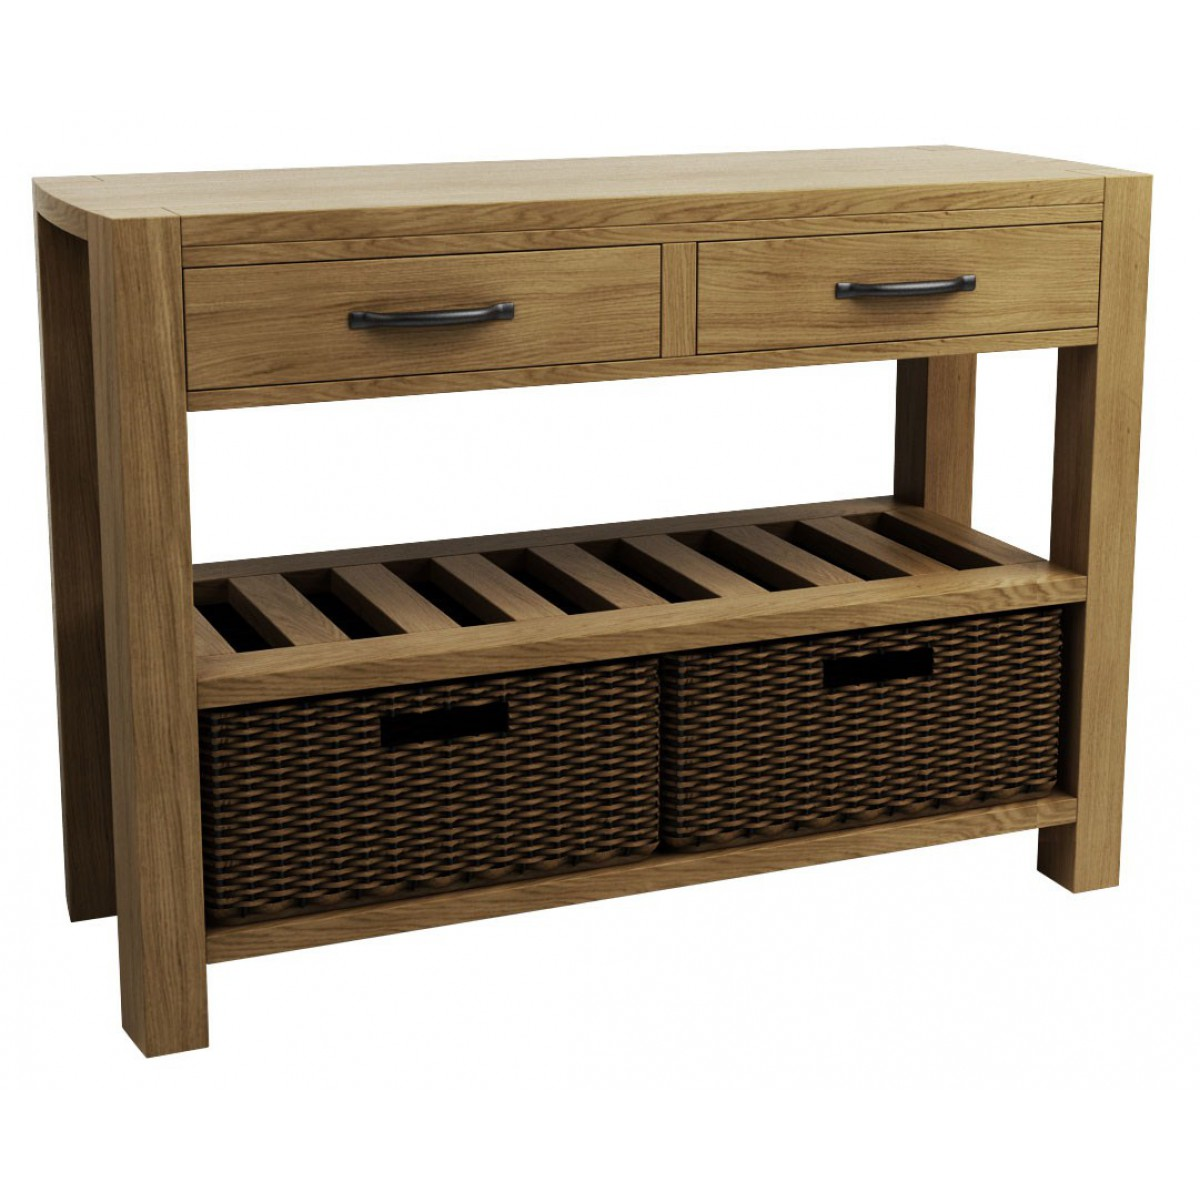 Goliath double basket console table - Goliath console table ...